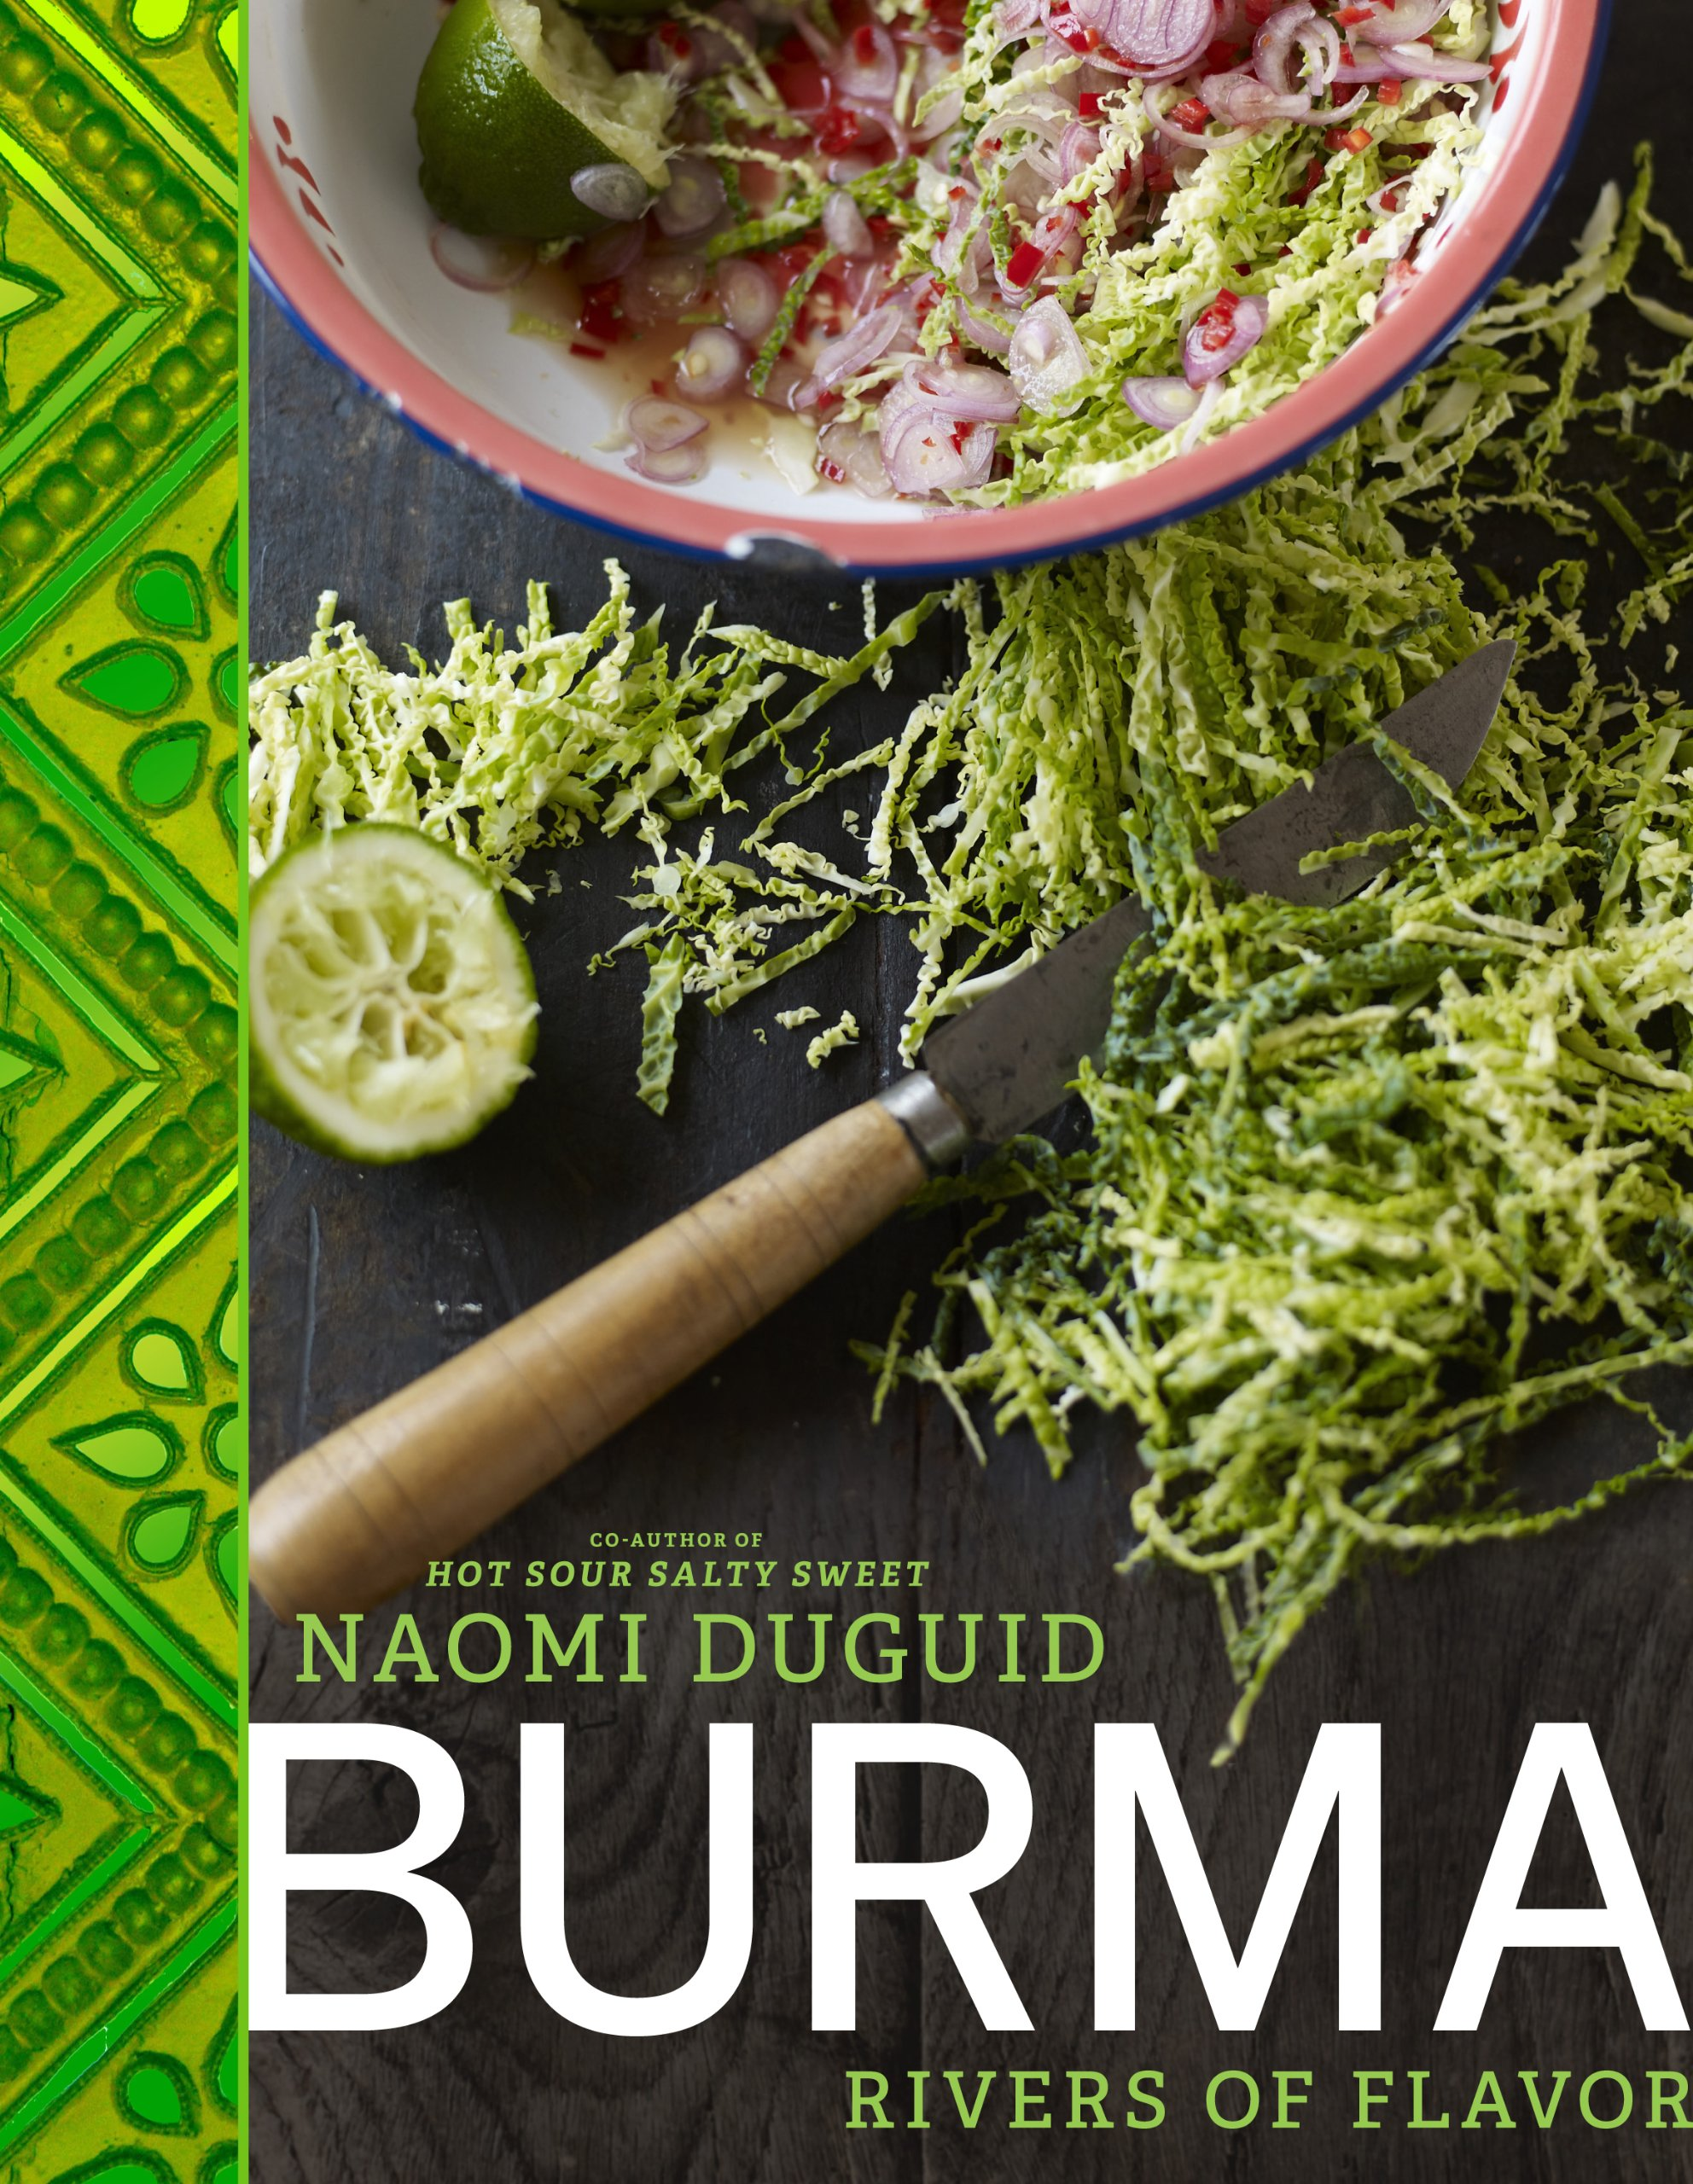 Burma rivers of flavor naomi duguid 9781579654139 amazon books forumfinder Image collections